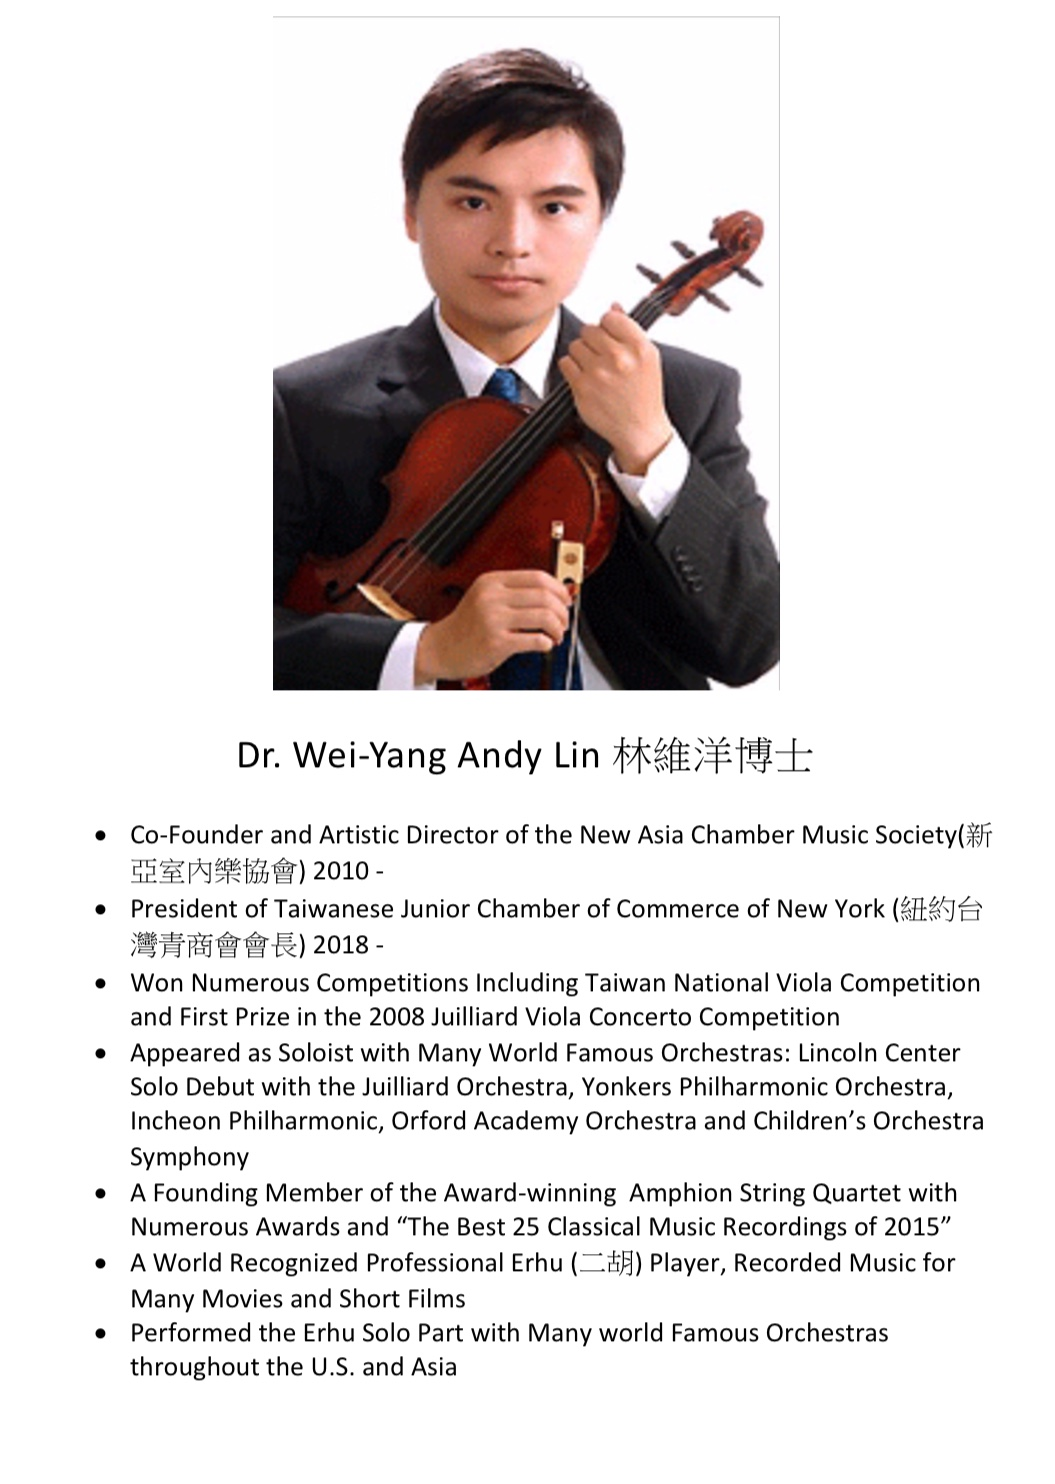 218. Dr. Wei-Yang Andy Lin 林維洋博士